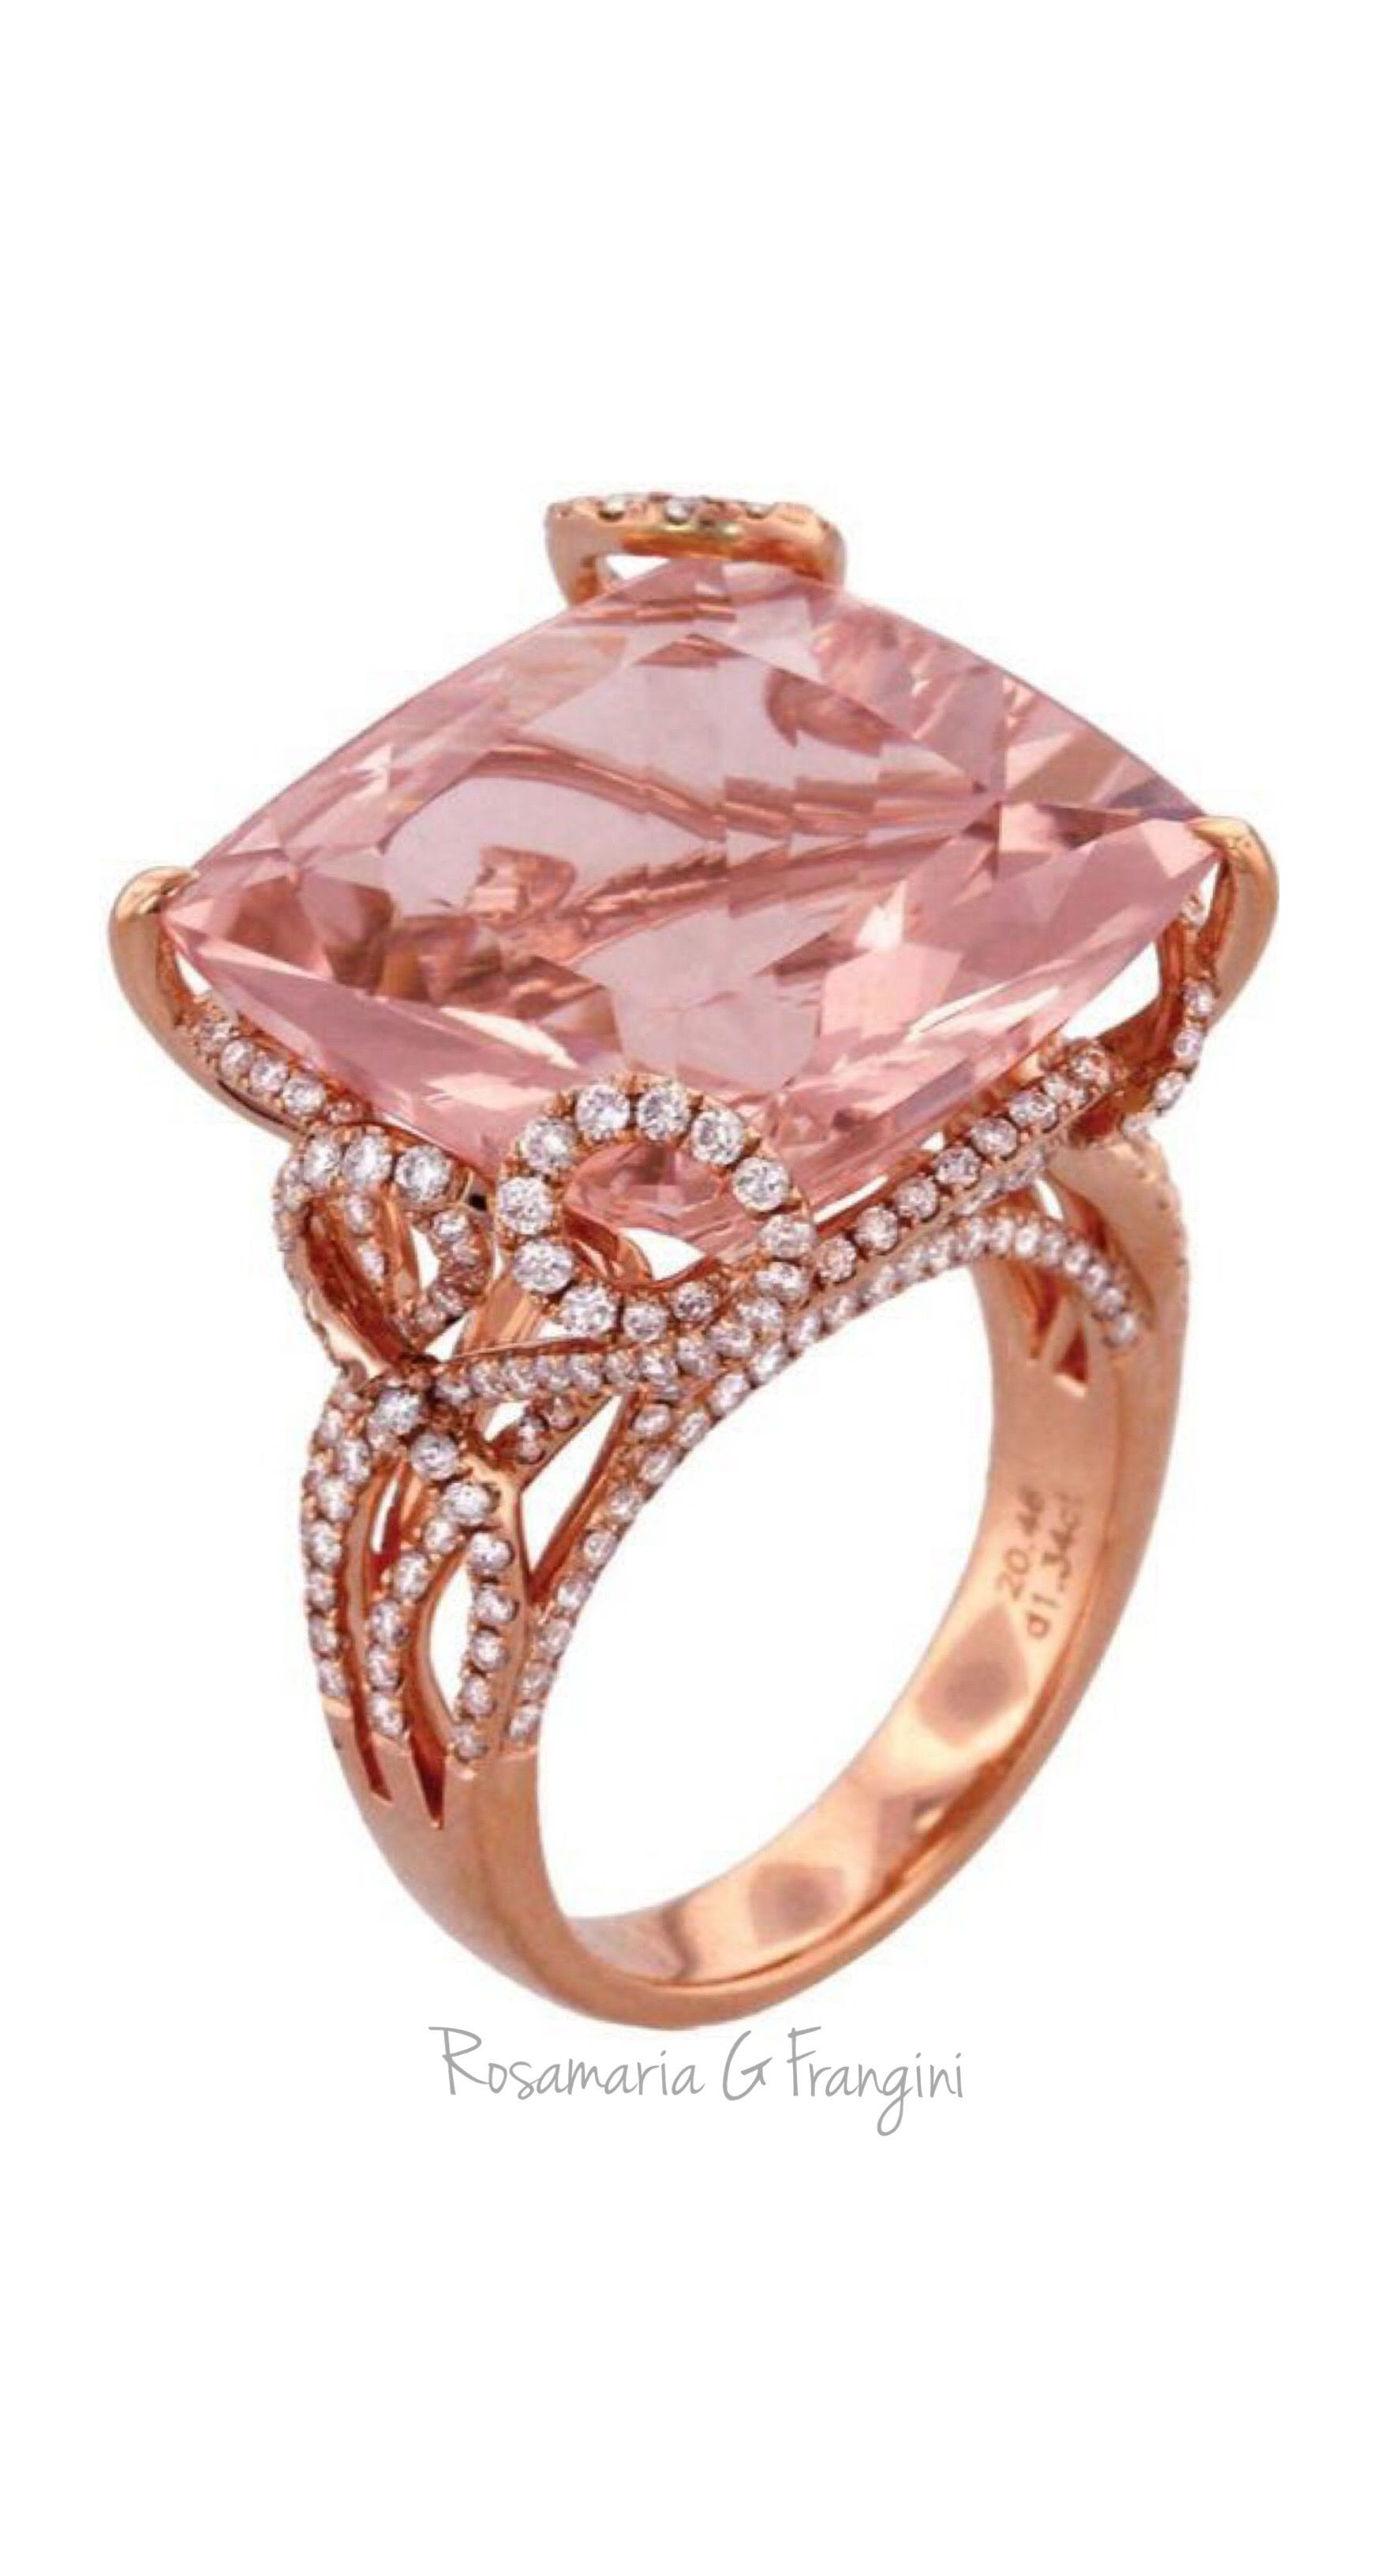 Rosamaria G Frangini | High Pink Jewellery | Morganite, diamond and ...